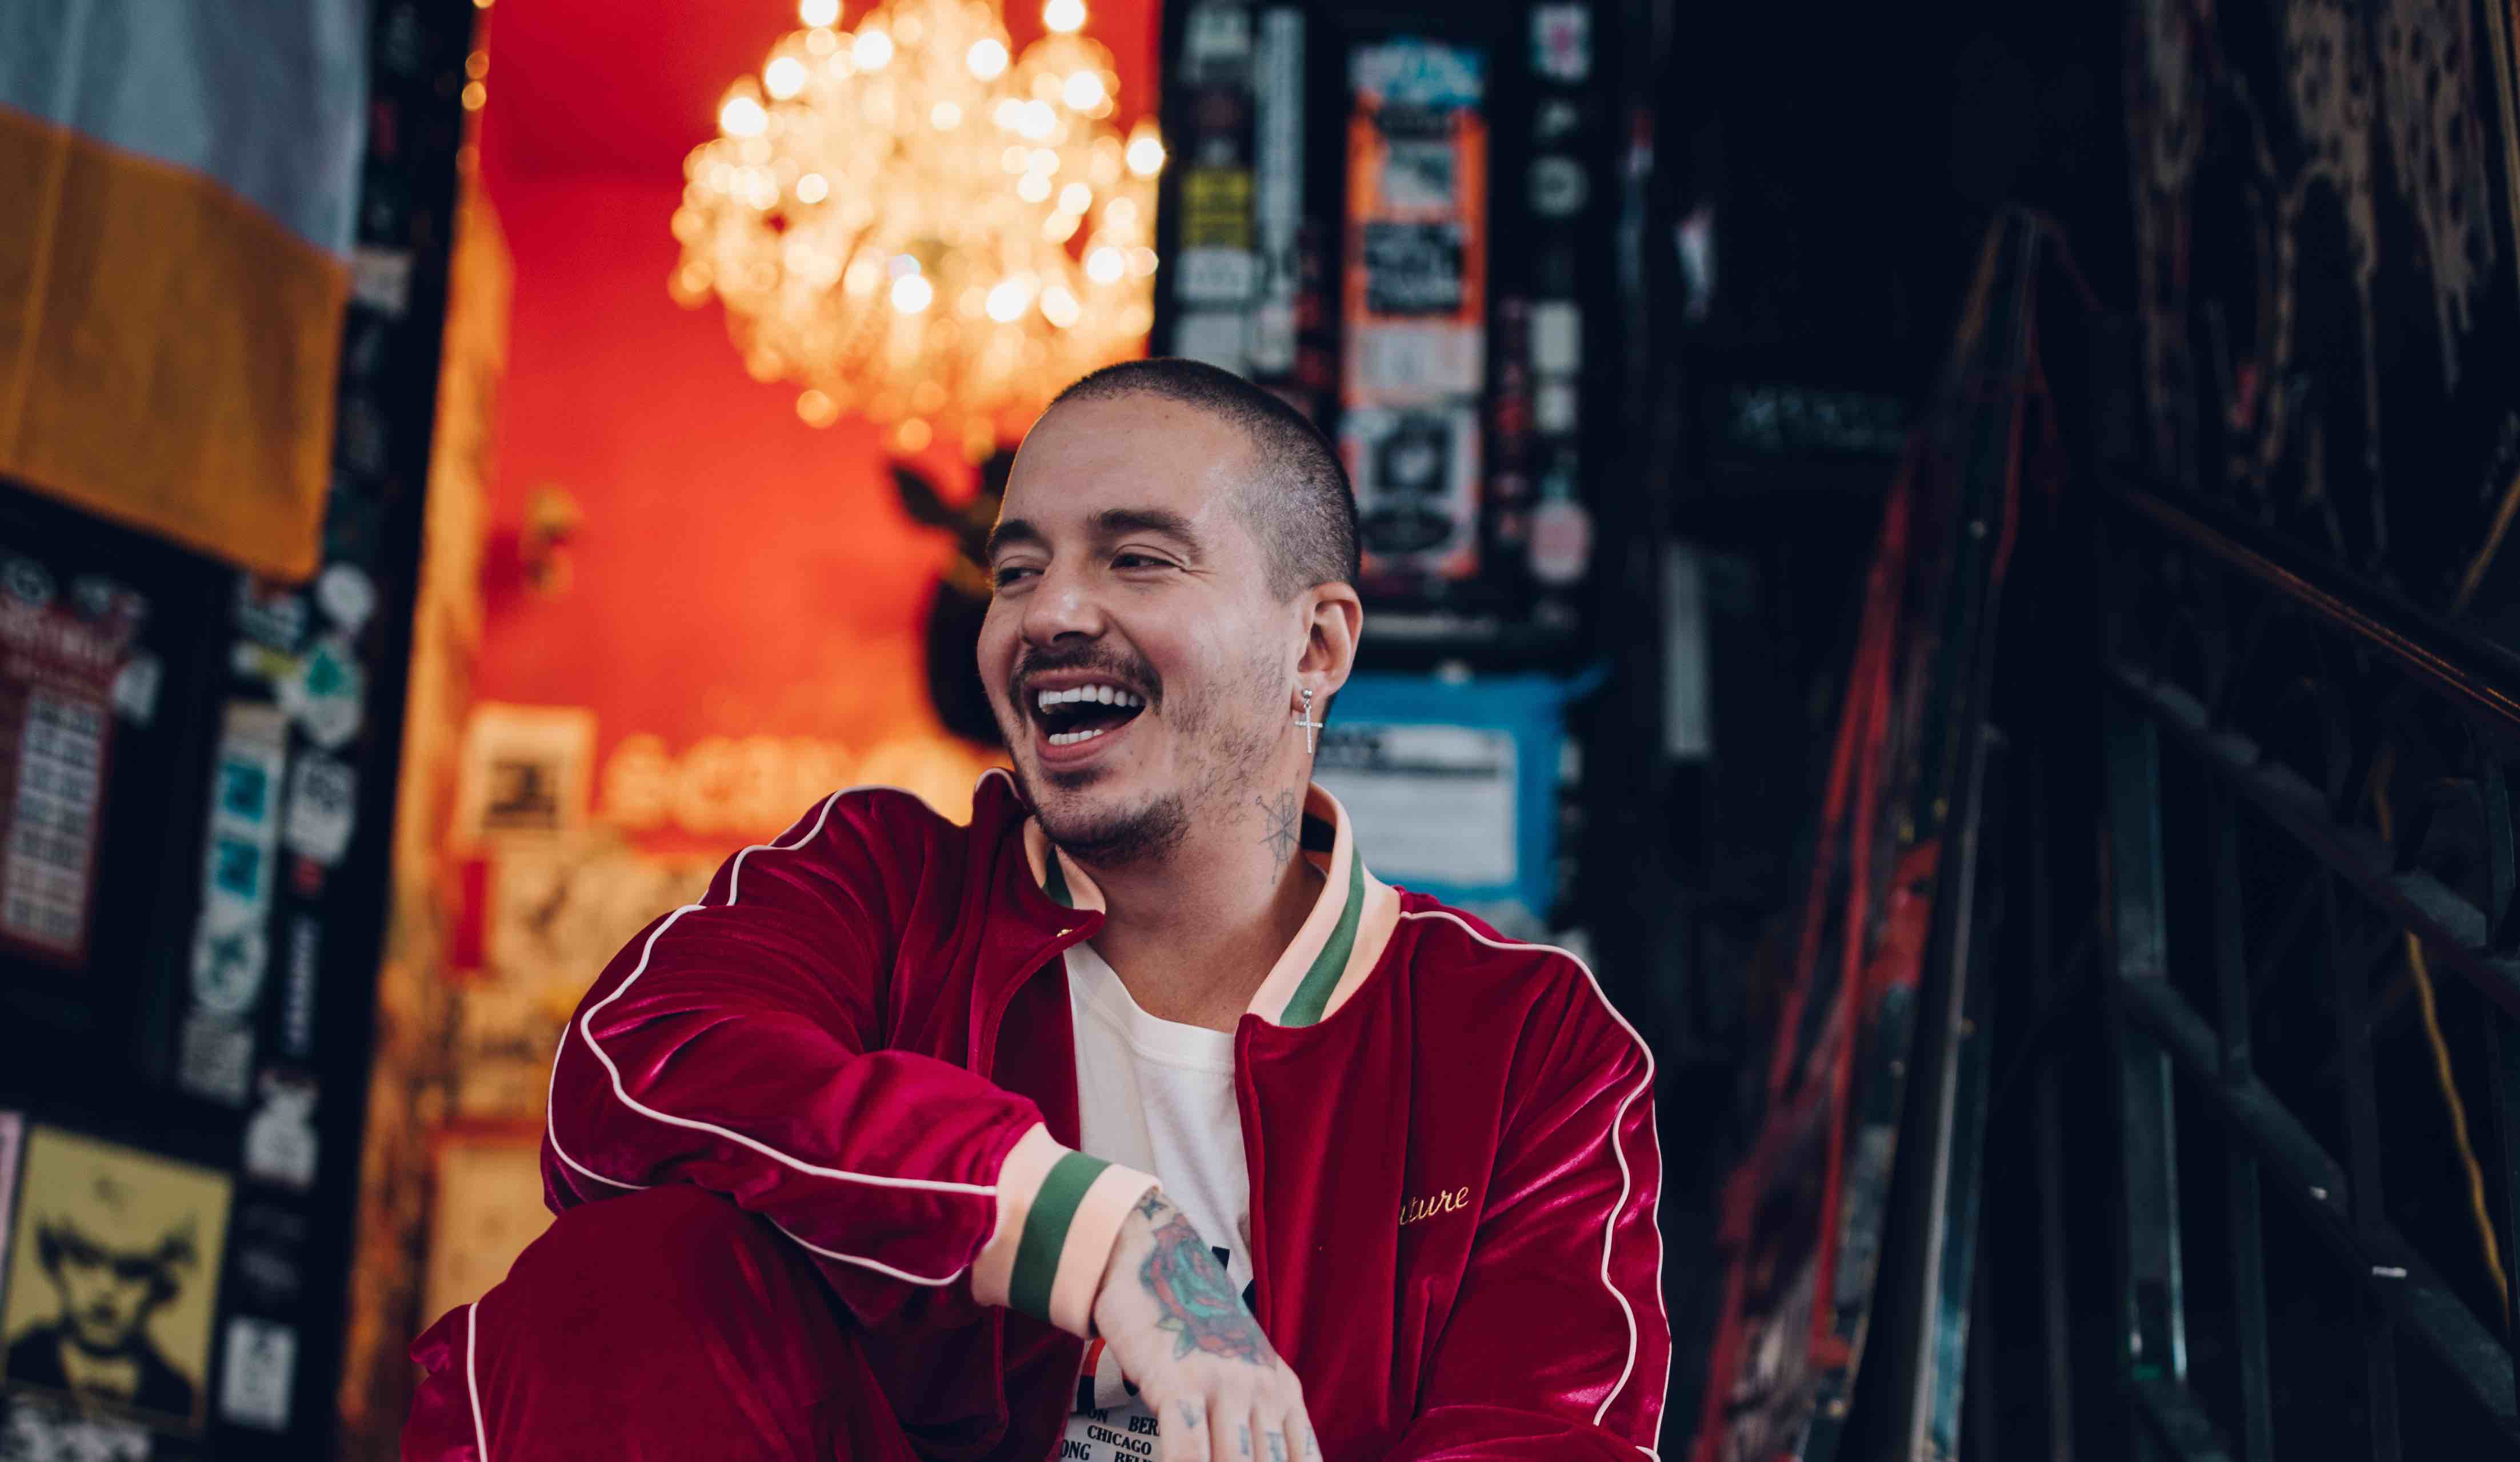 J Balvin's New Album 'Vibras' Is Packed With International Party Jams